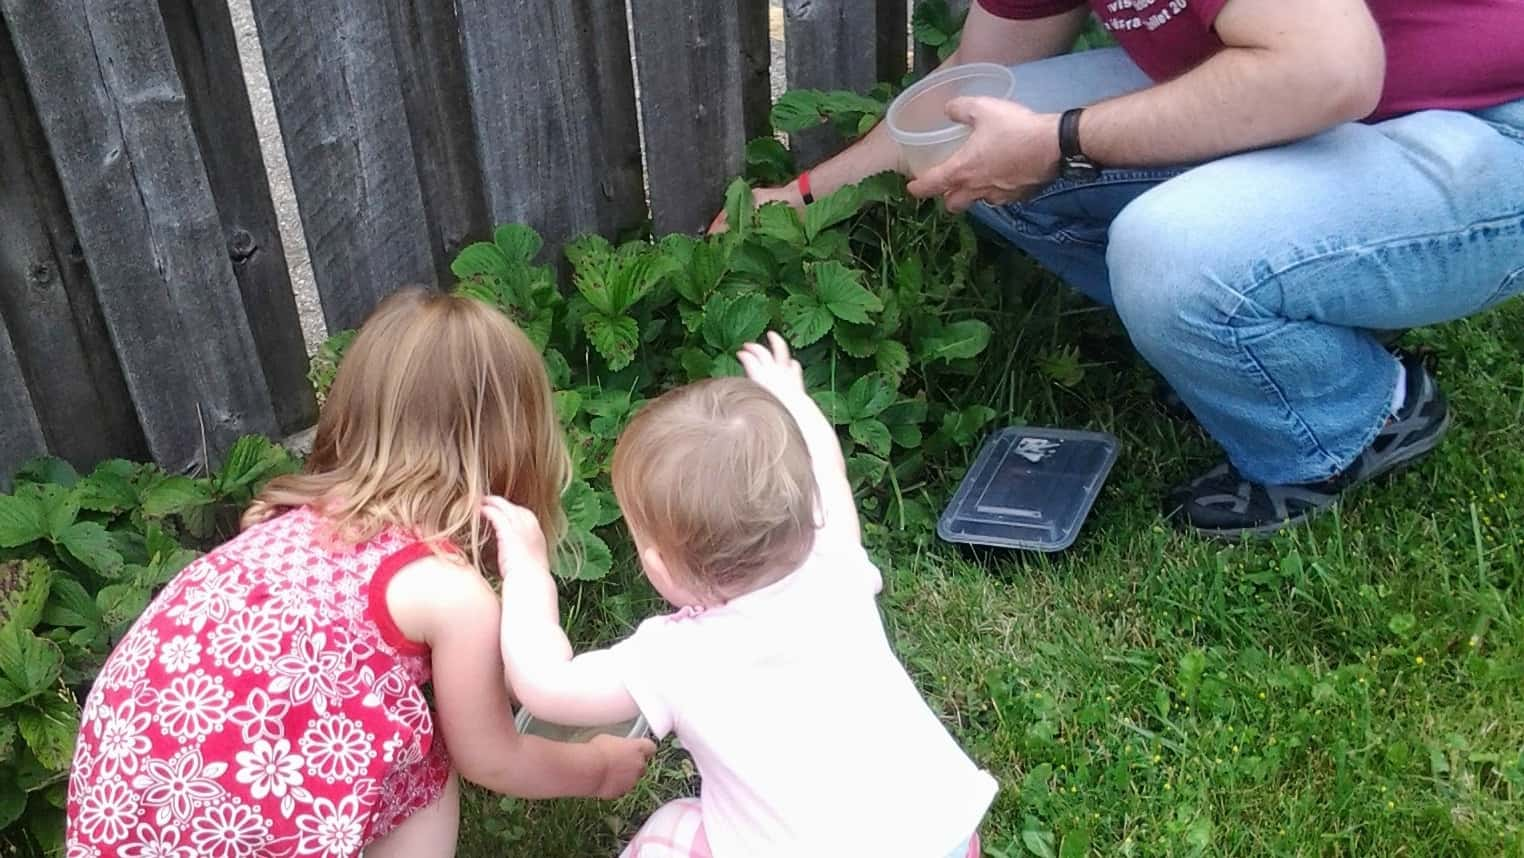 Children can help pick vegetables during nutrition month